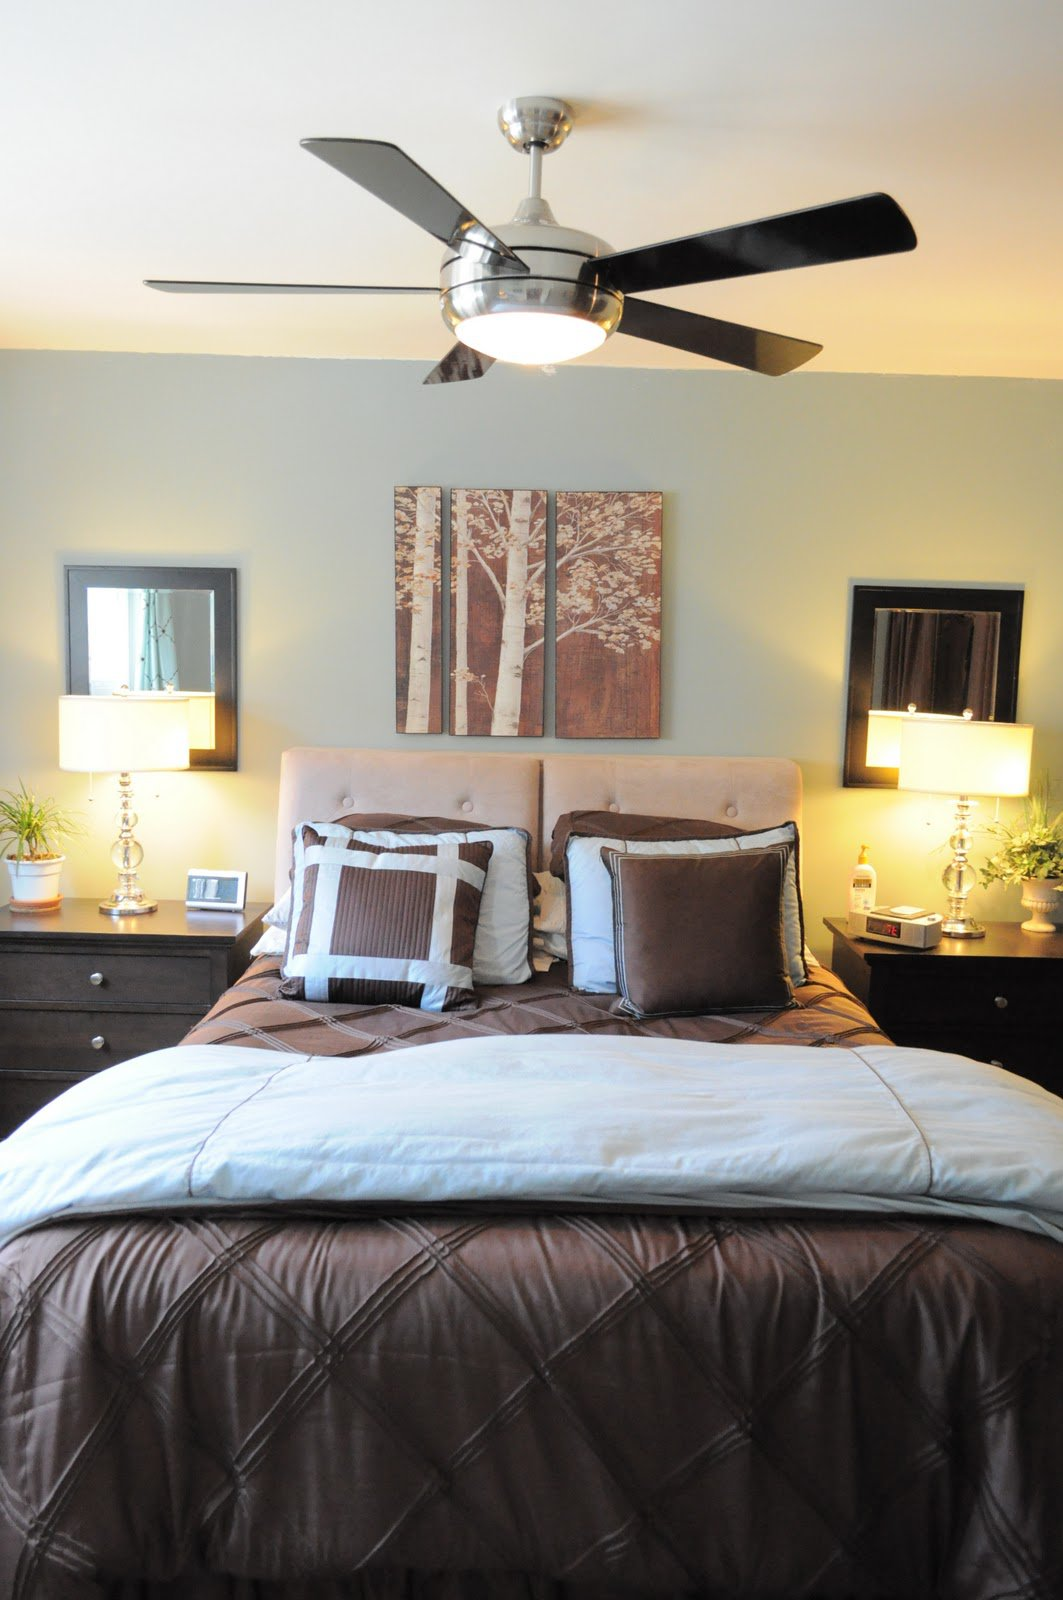 Stunning bedroom ceiling fans with lights image of: ceiling fans with lights modern umhwtbx